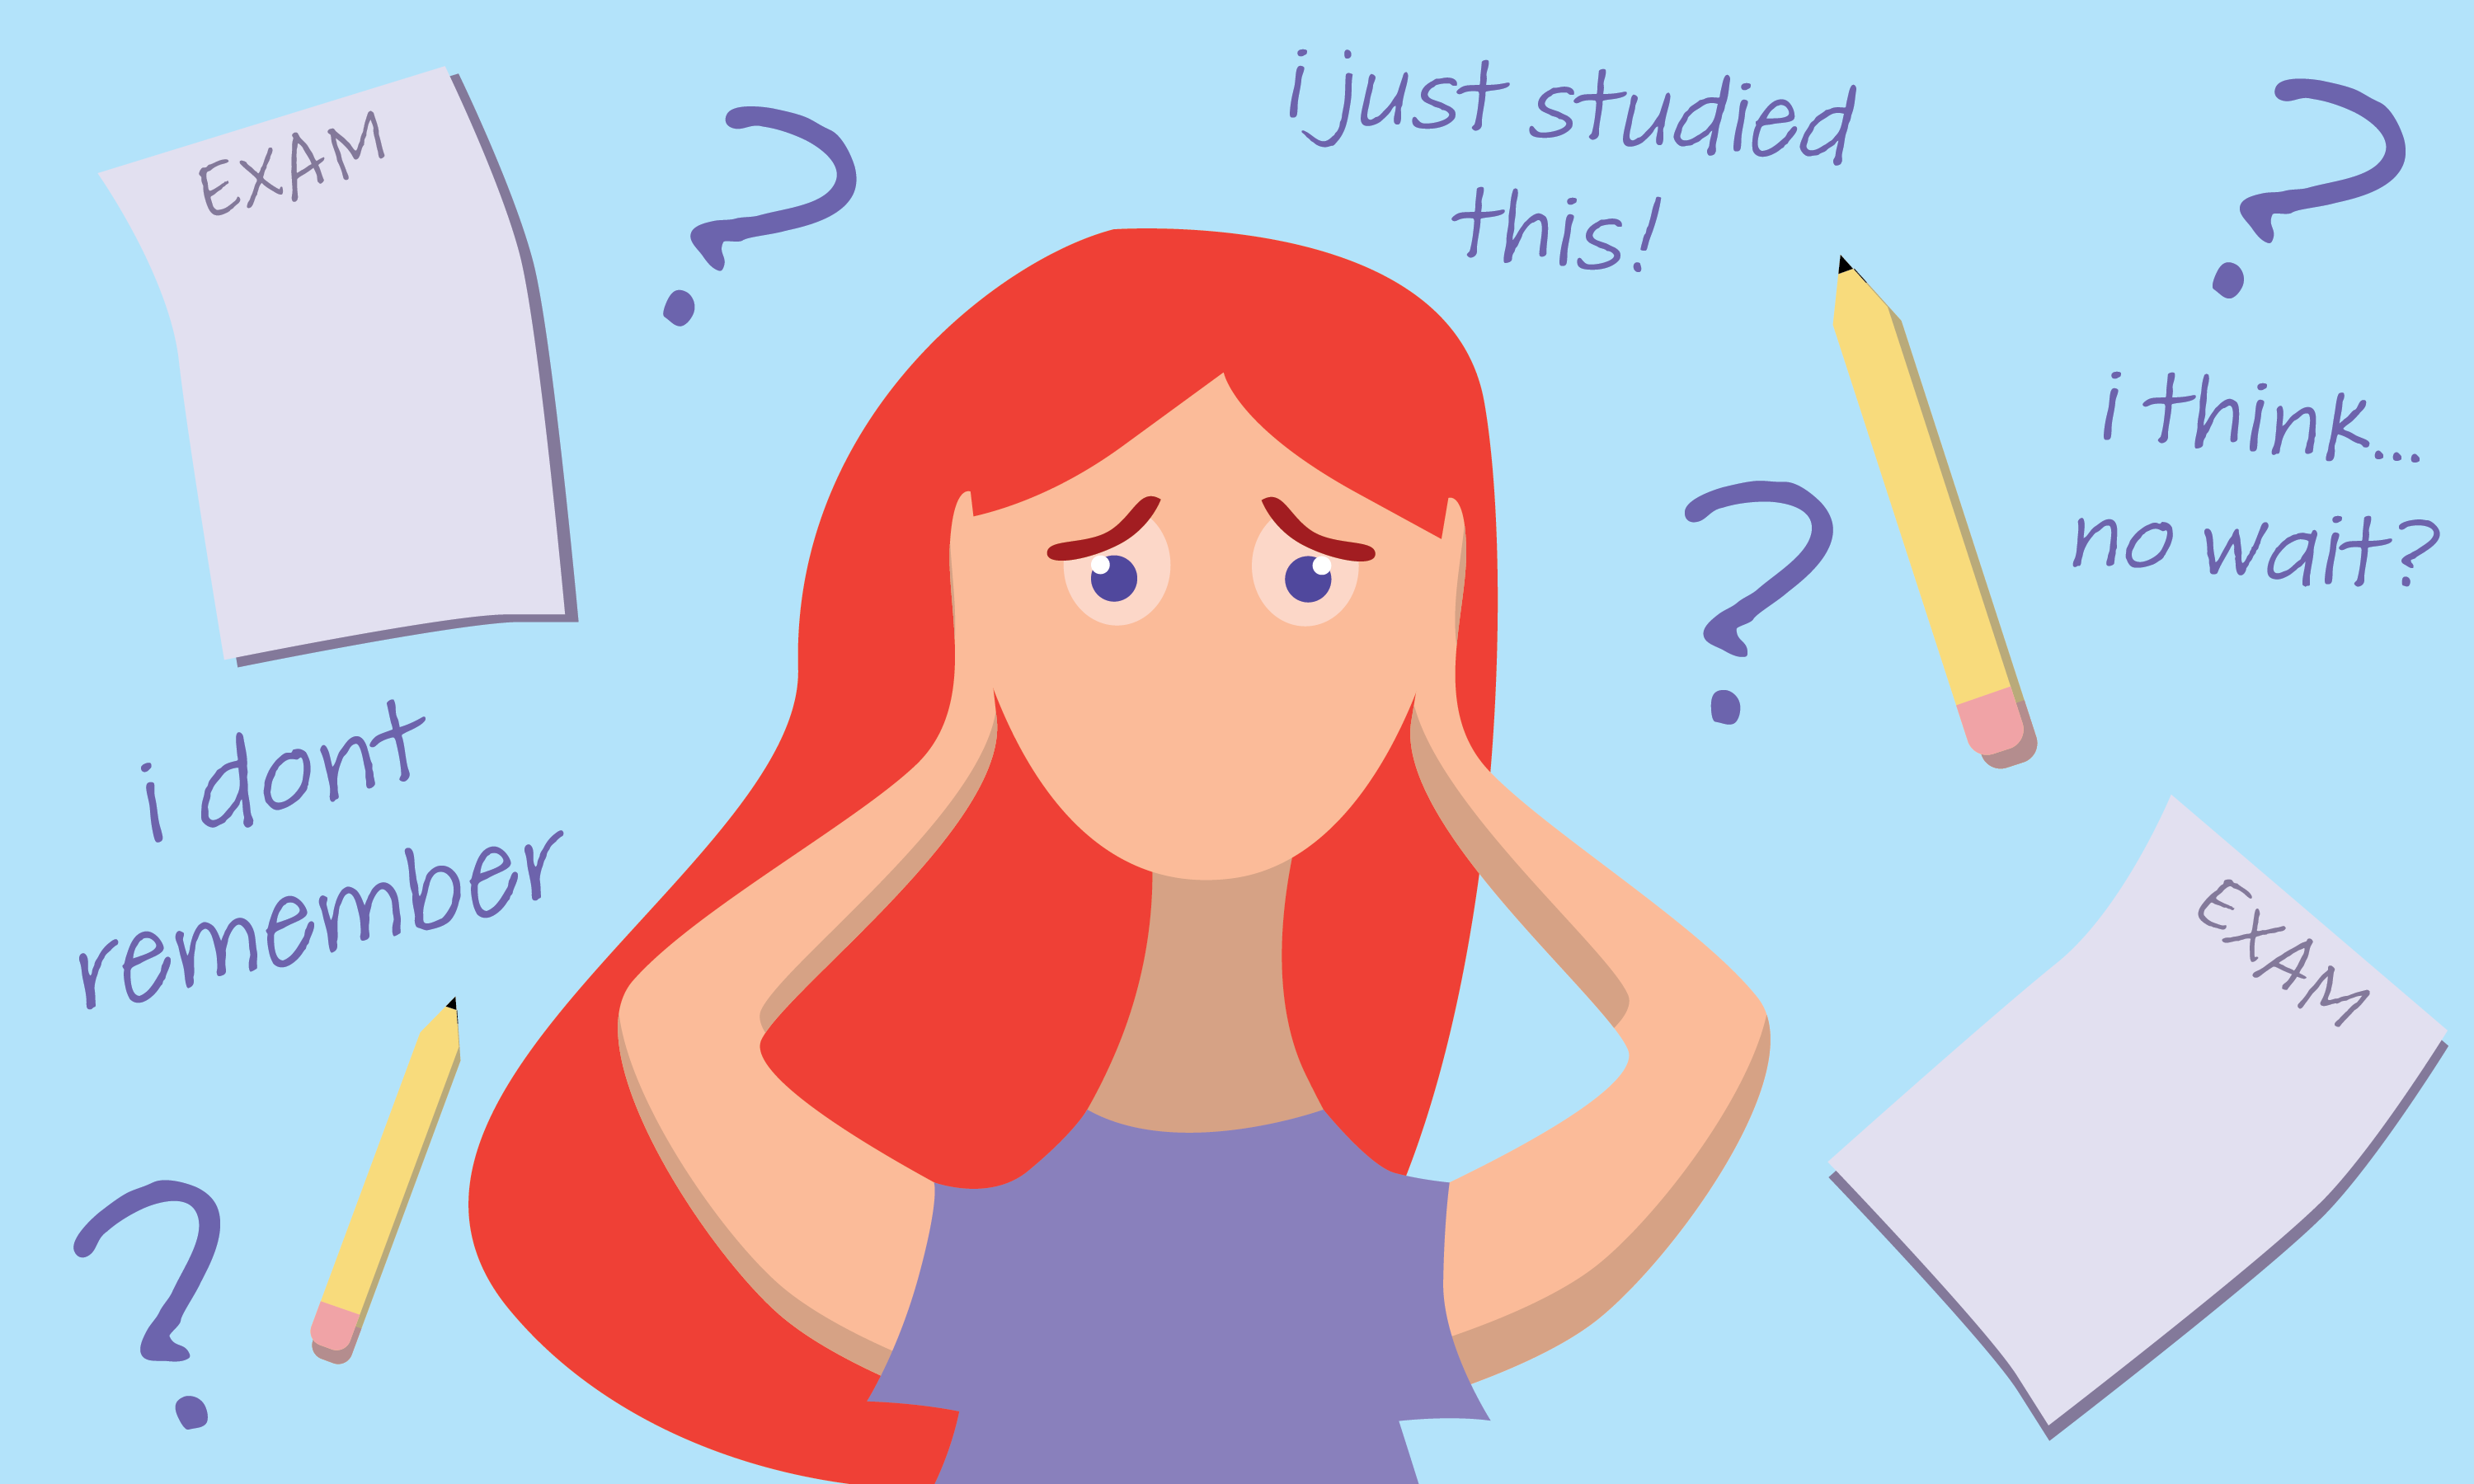 Dyson counselor discusses test anxiety among students